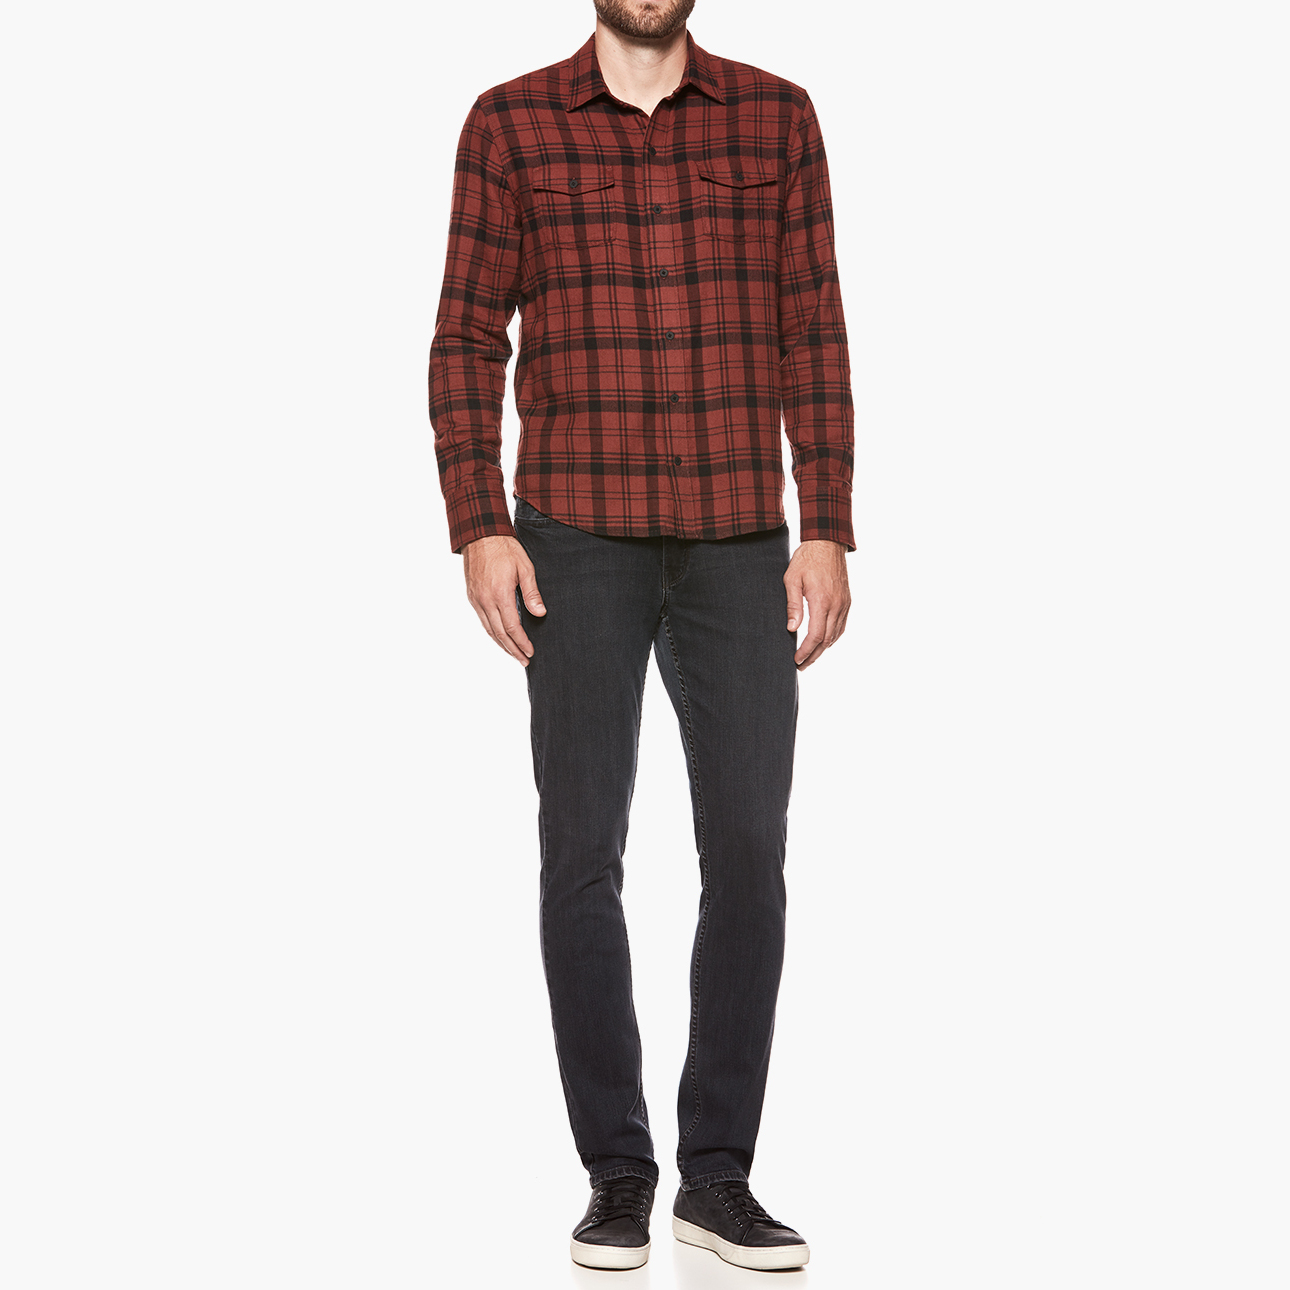 PAIGE Men\\\'s Everett Shirt - Mineral Red Ashville Plaid   Size Small   Long Sleeves